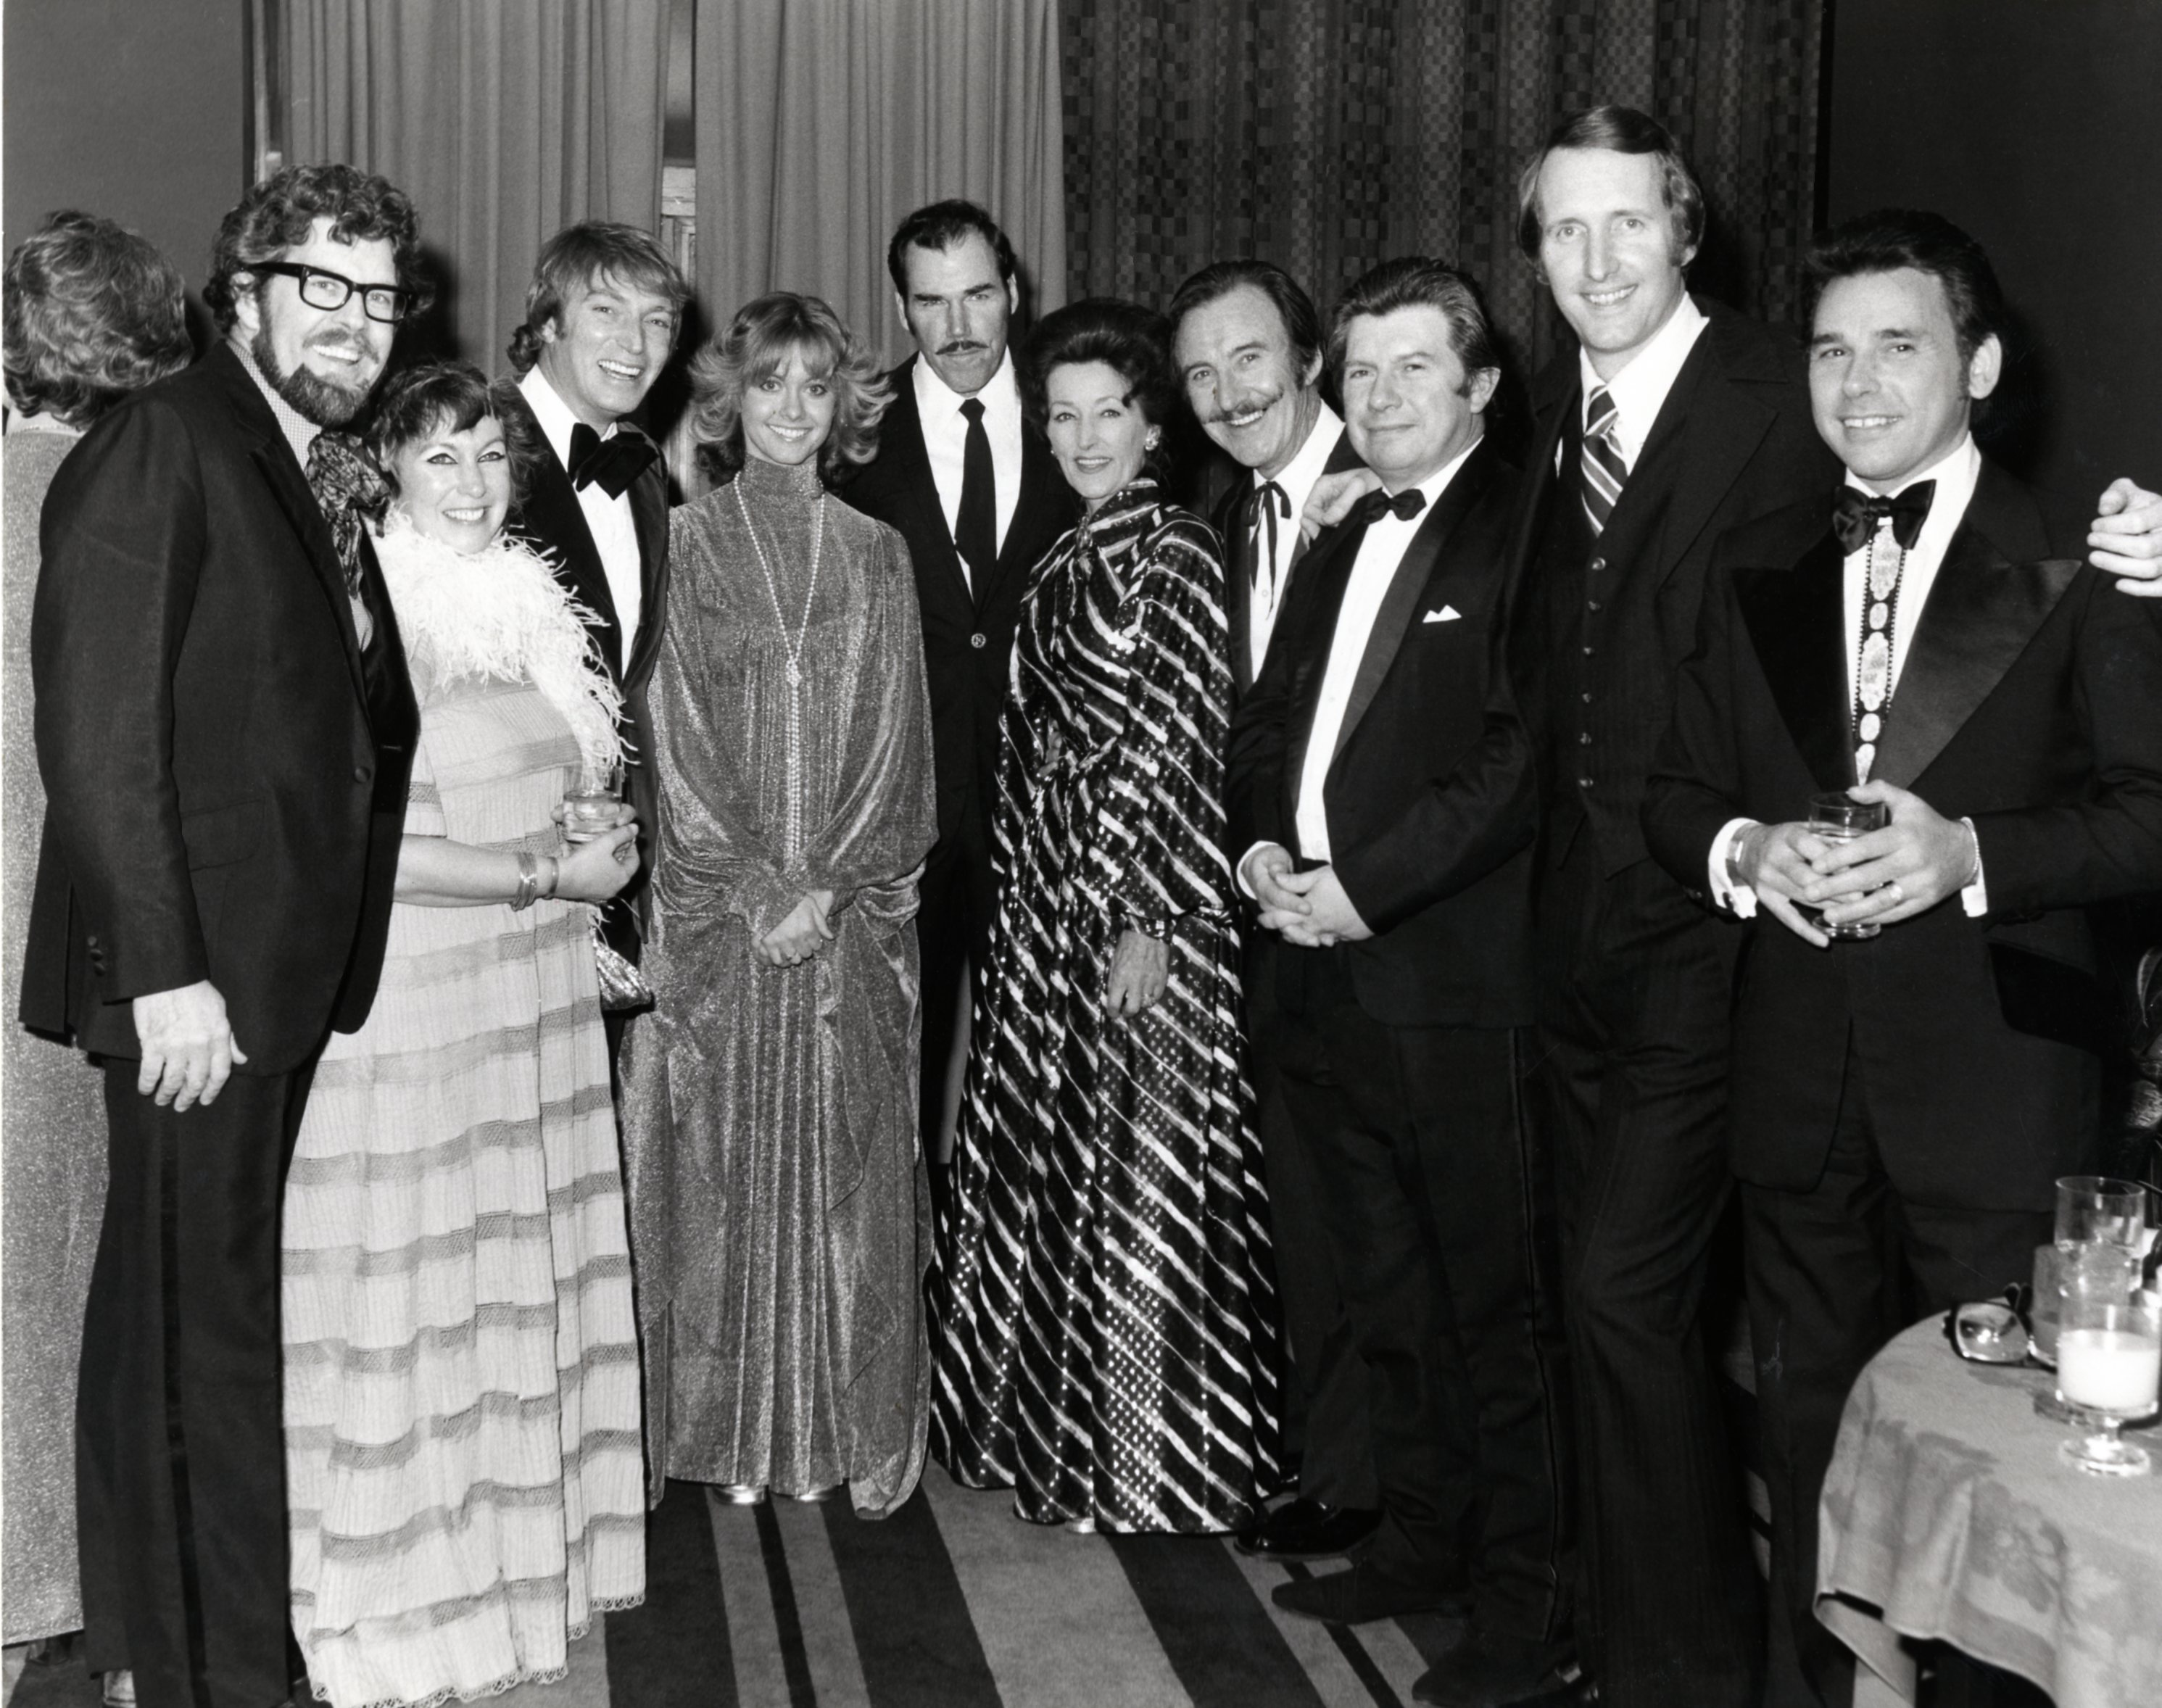 George Hamilton IV, Rolf Harris, an unidentified woman, Frank Ifield, Olivia Newton-John, Slim Whitman, Miki & Griff, an unidentified man, and Mervyn Conn, at Wembley, 1974, b&w print, roughly 8x10, photo by Dominic McKenzie, P4920 in the George Hamilton IV Collection (20410), Southern Folklife Collection, UNC Chapel Hill